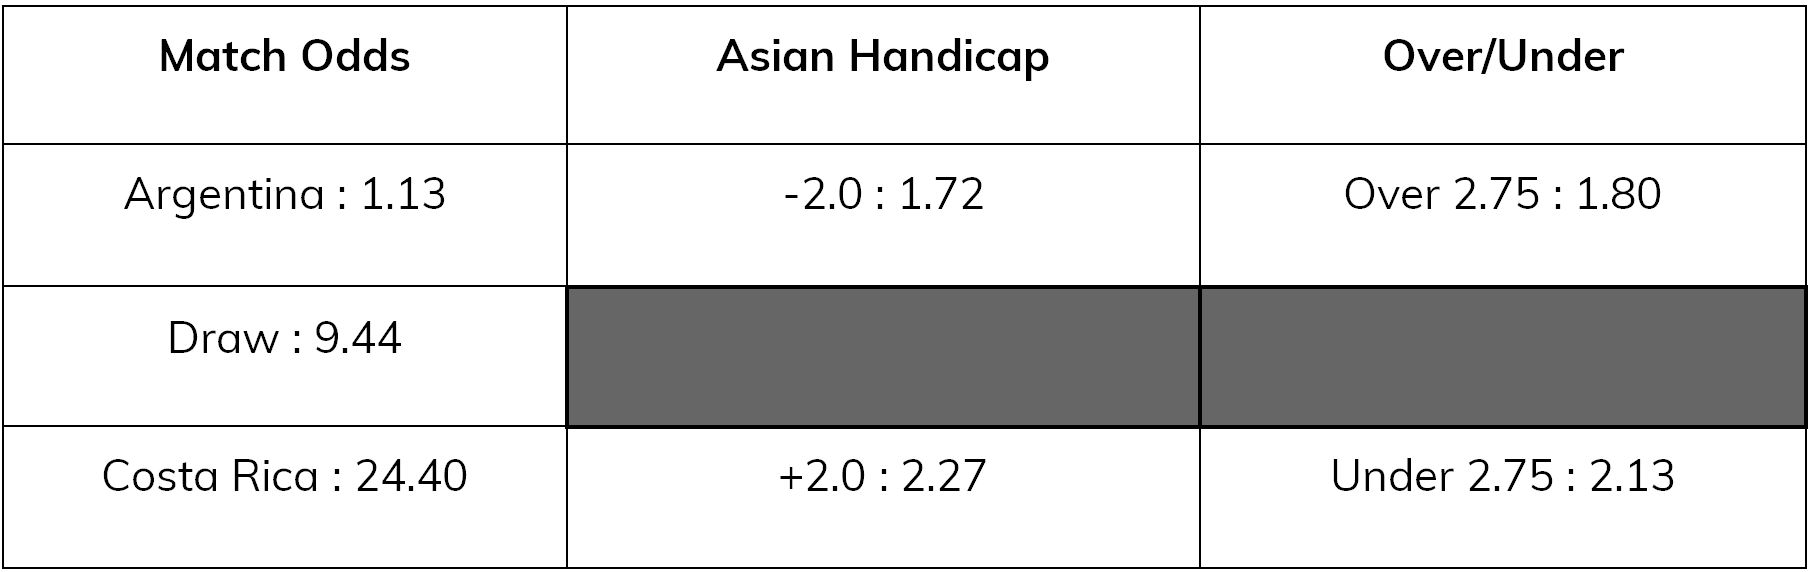 brazil-v-costa-rica-asian-handicap-eastbridge6